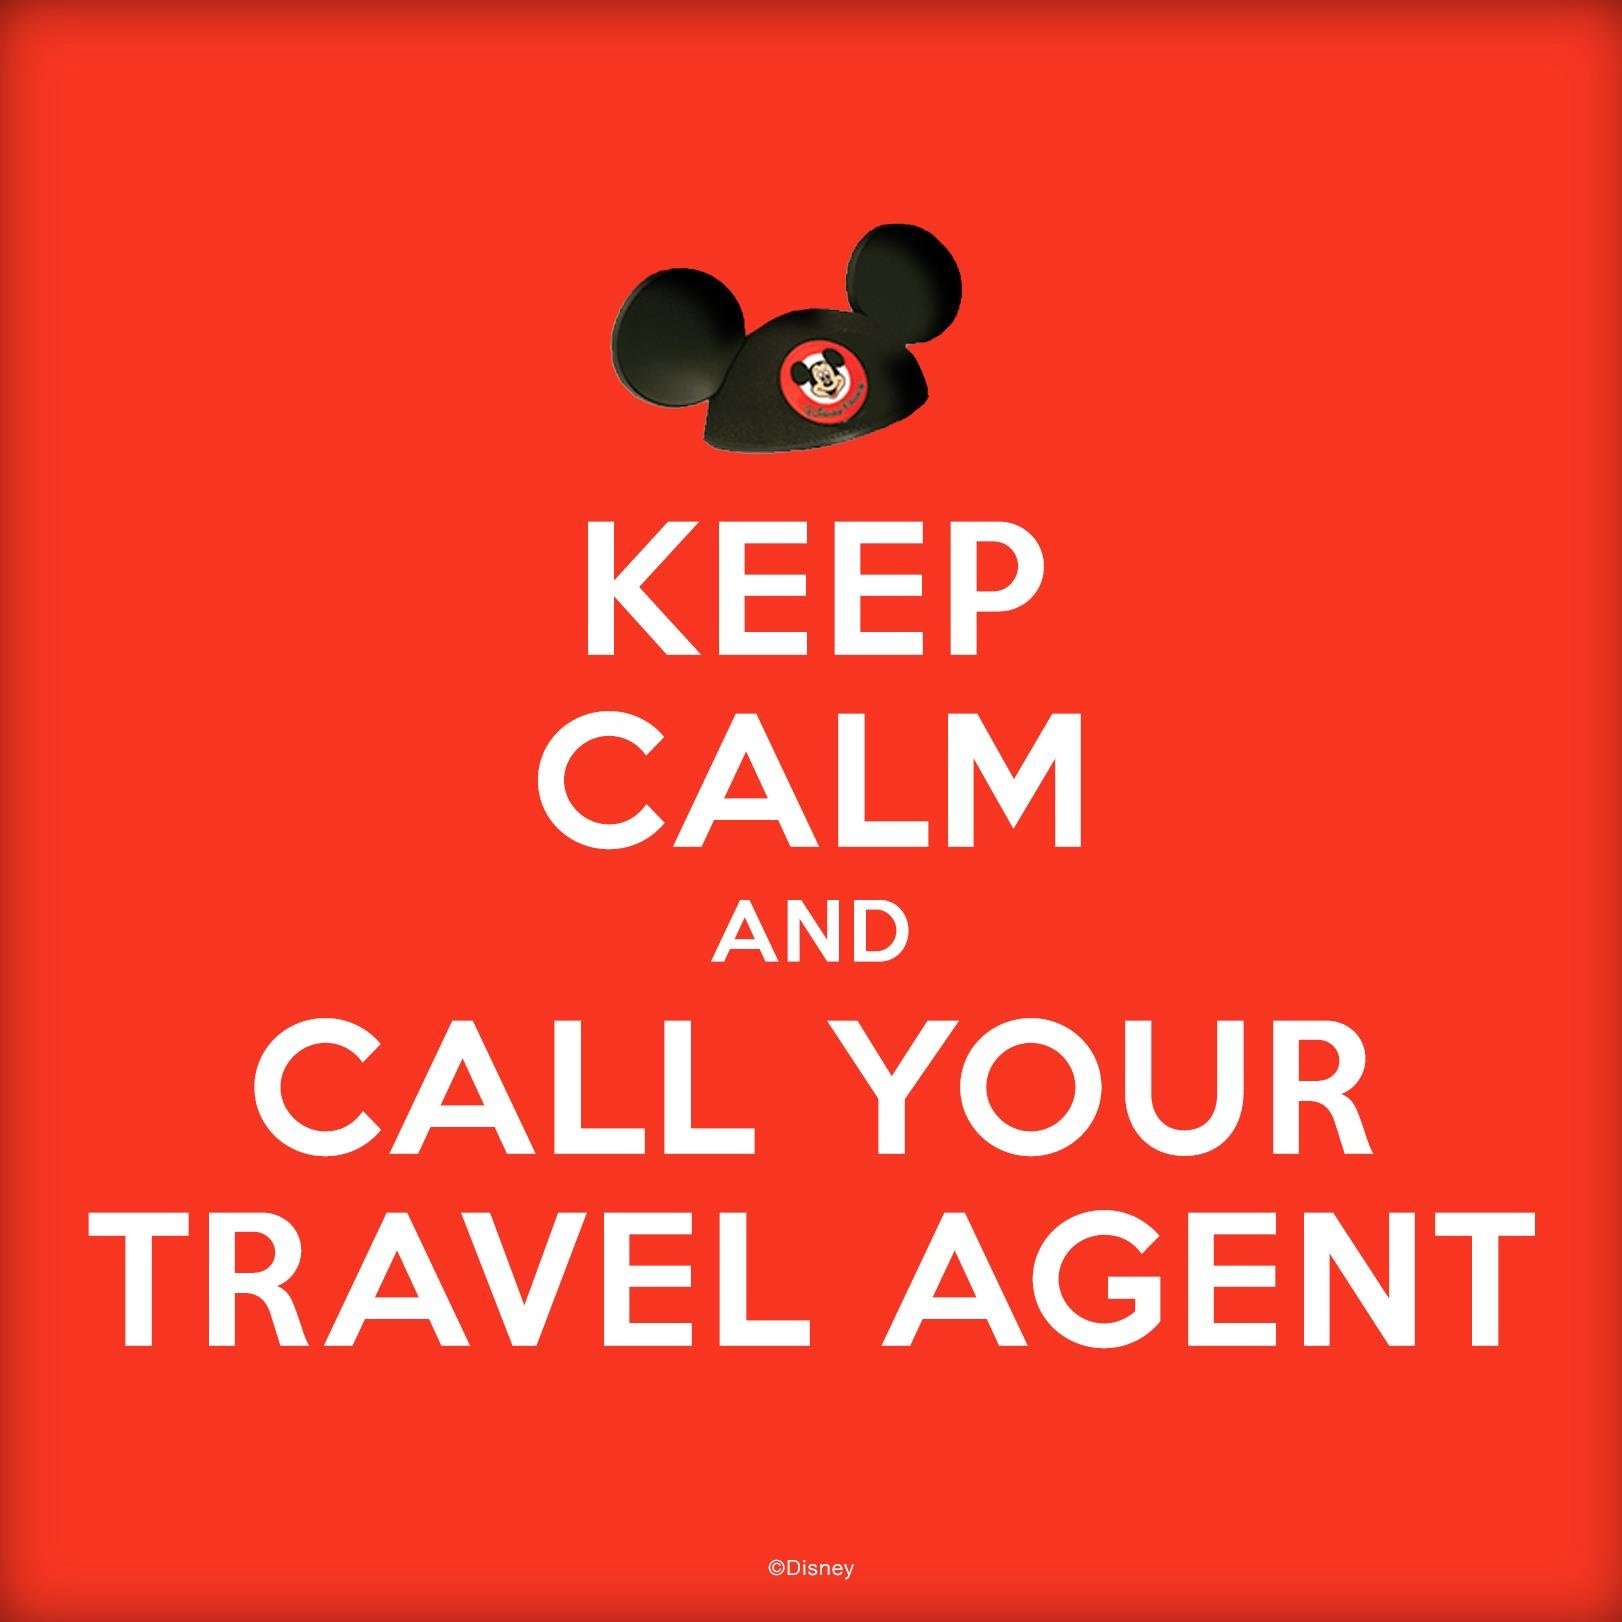 How do I become a Disney Travel Agent?